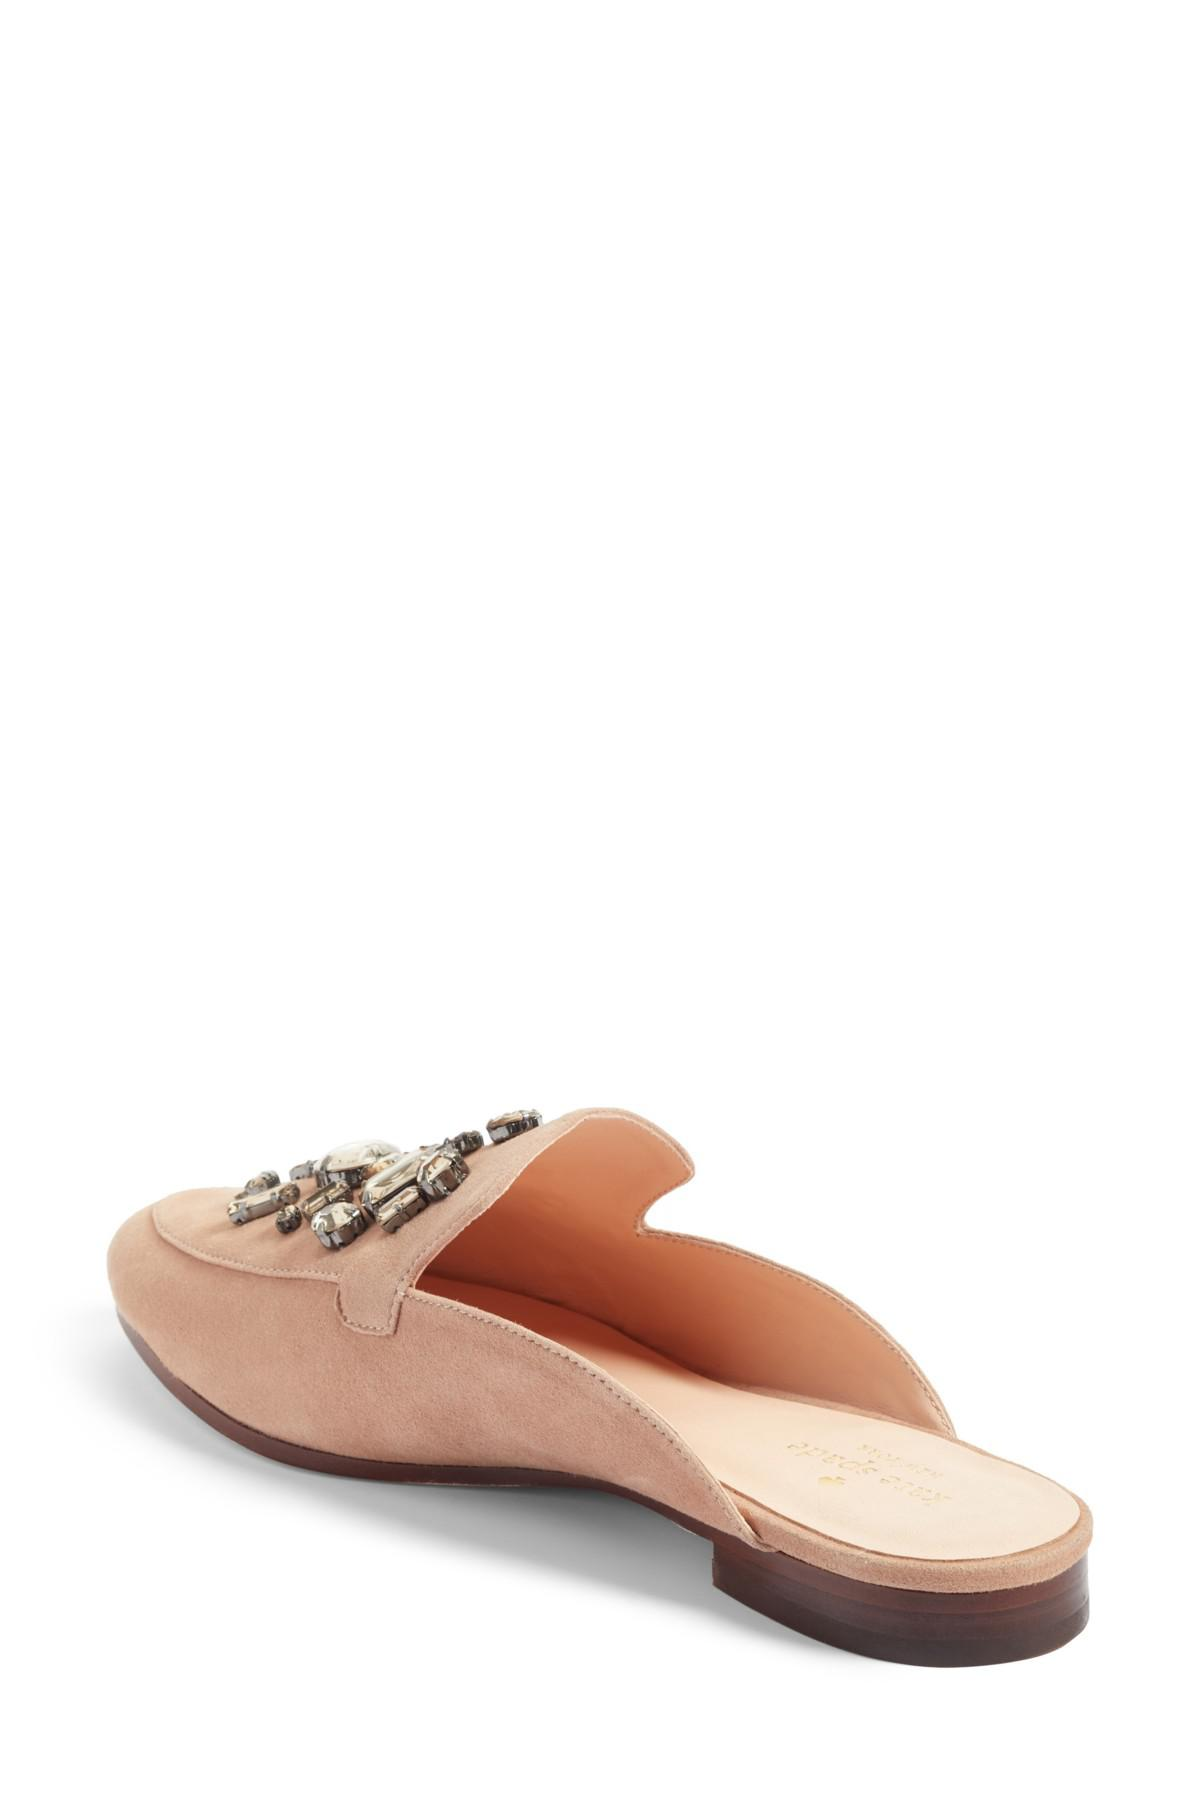 887d763fd420 Lyst - Kate Spade Cavell Loafer Mule (women)